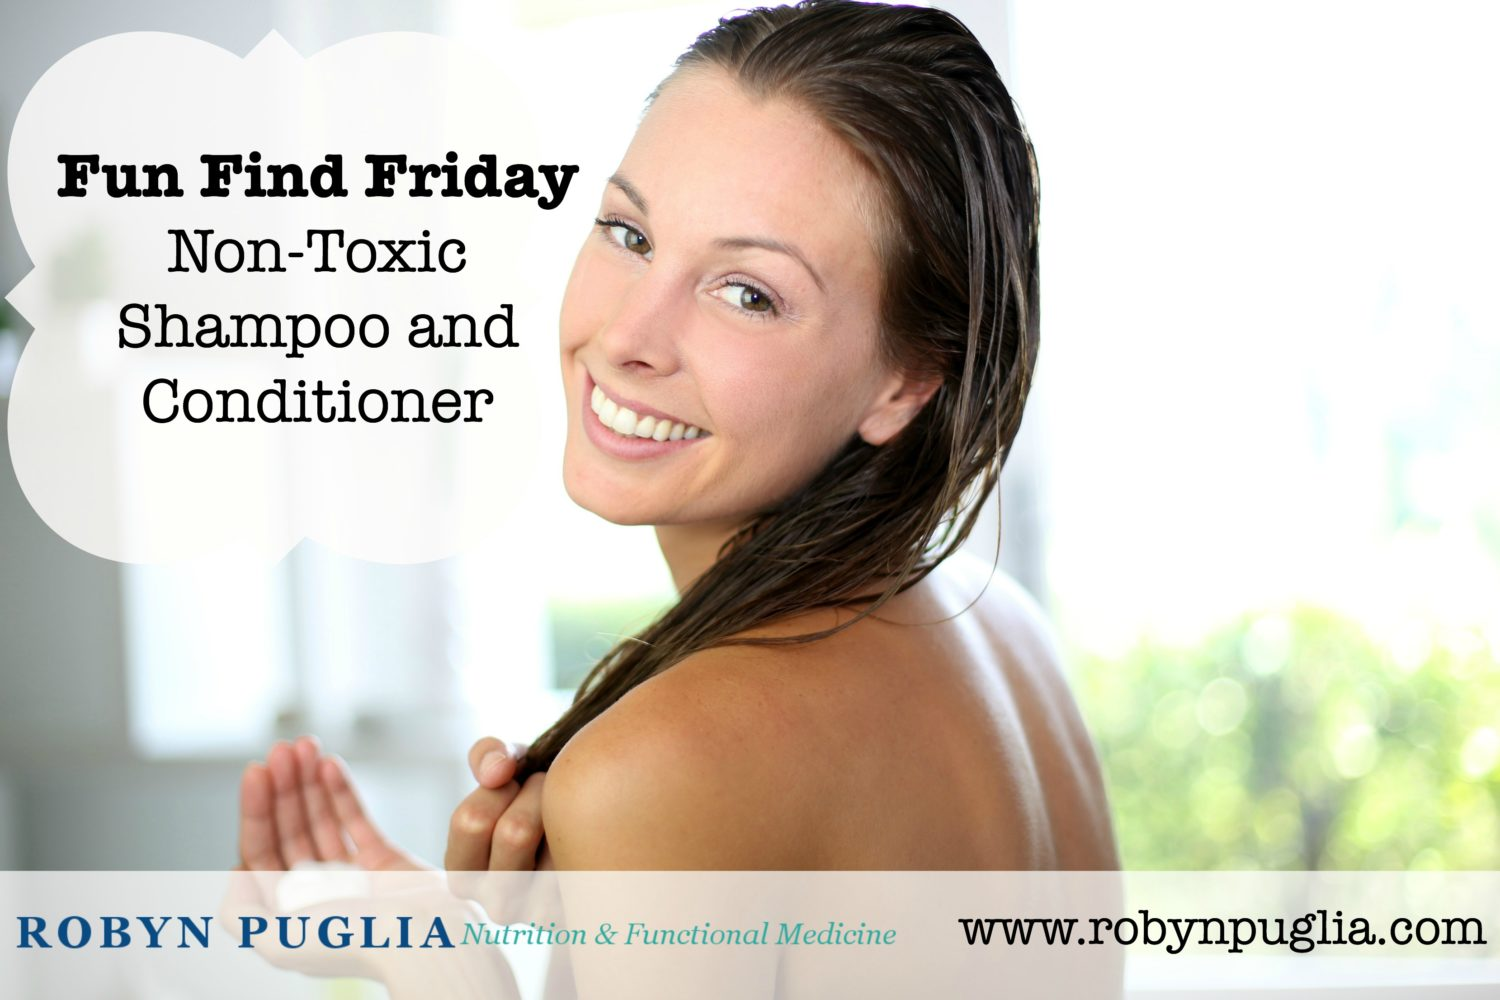 Fun Find Friday - Non-Toxic Shampoo and Conditioner